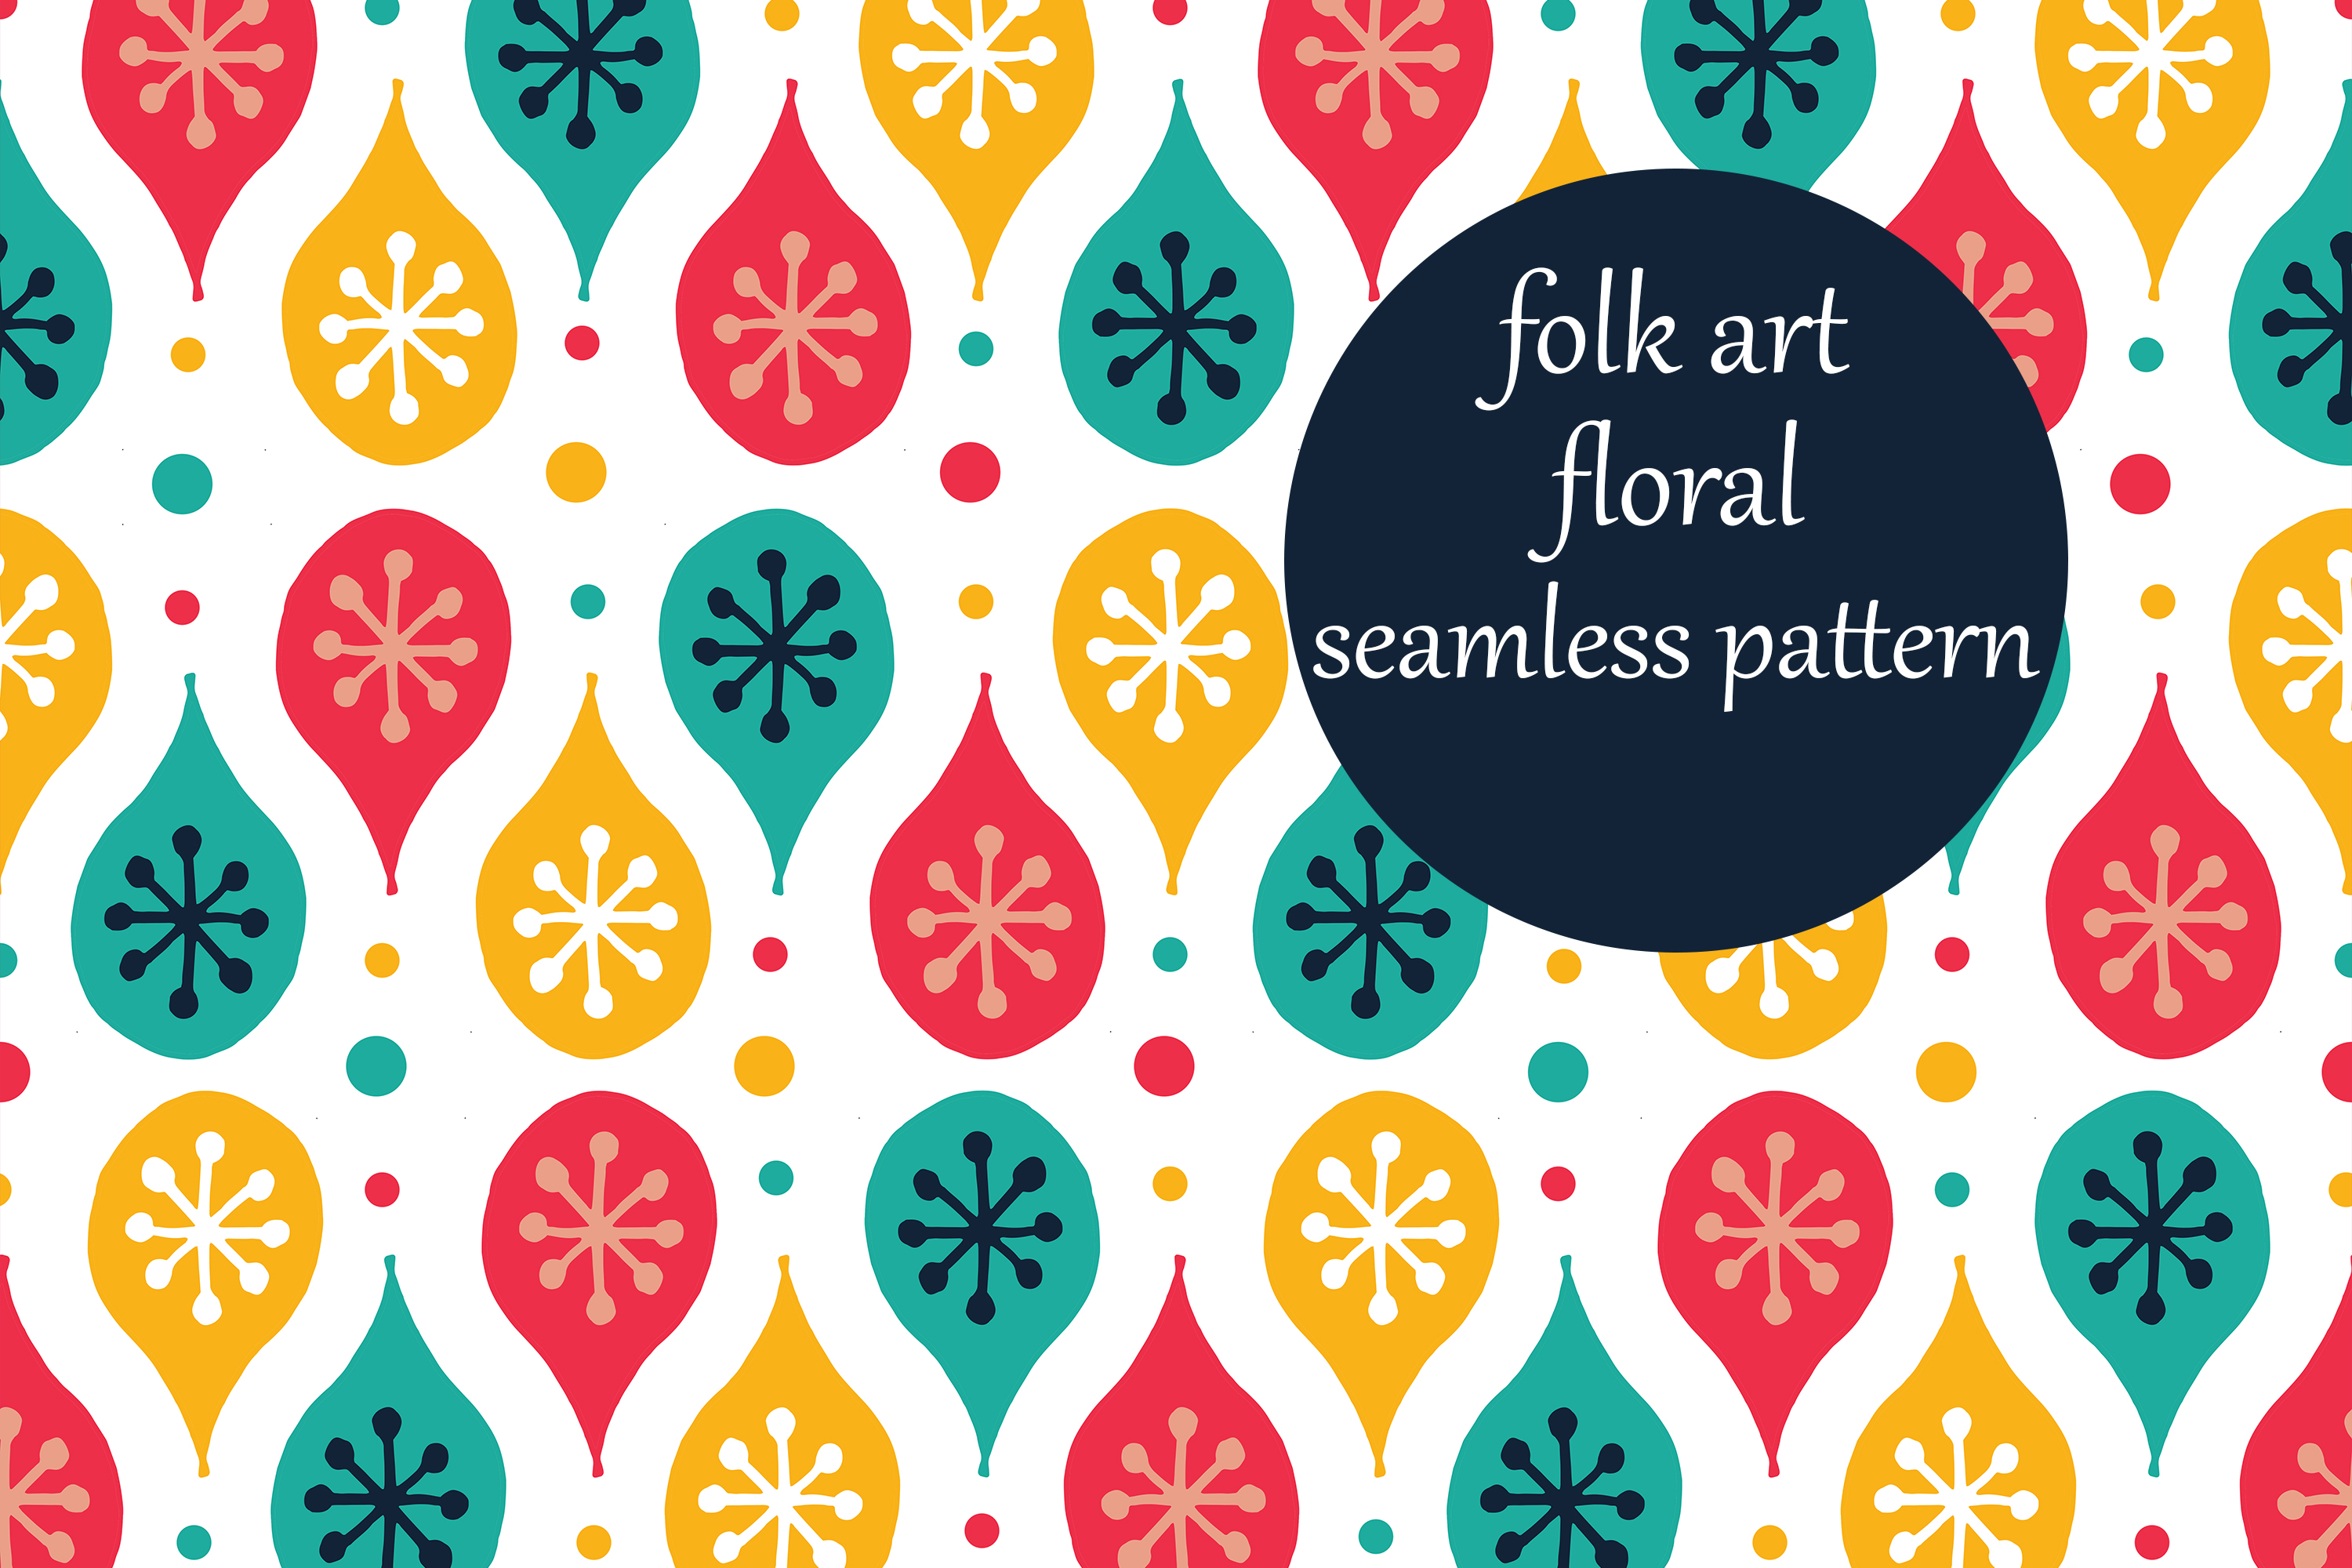 Download Free Festive Folk Art Illustrated Pattern Graphic By Brightgrayart for Cricut Explore, Silhouette and other cutting machines.